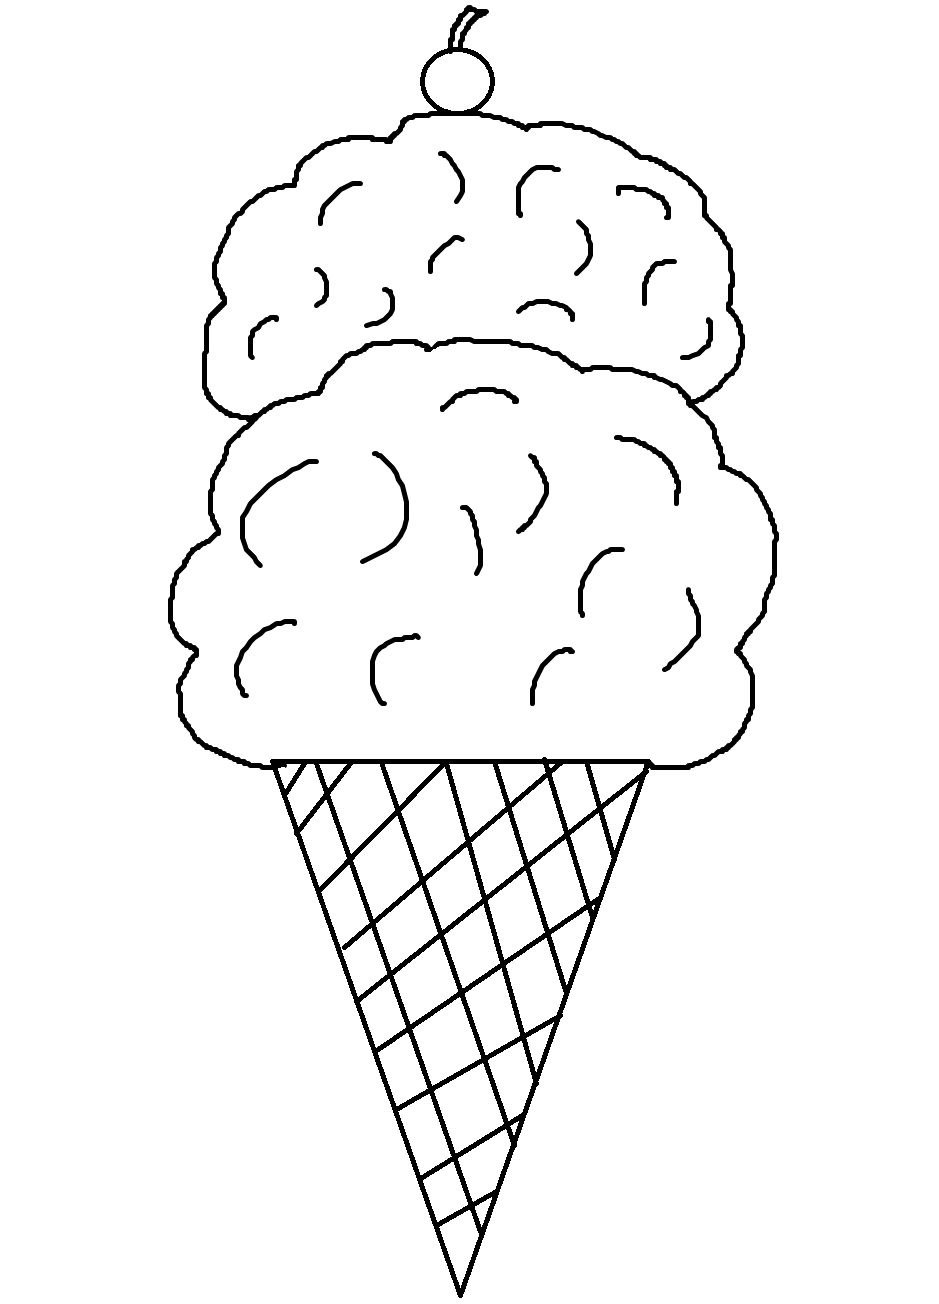 Ice cream coloring book pages - Printable Ice Cream Cone Coloring Pages